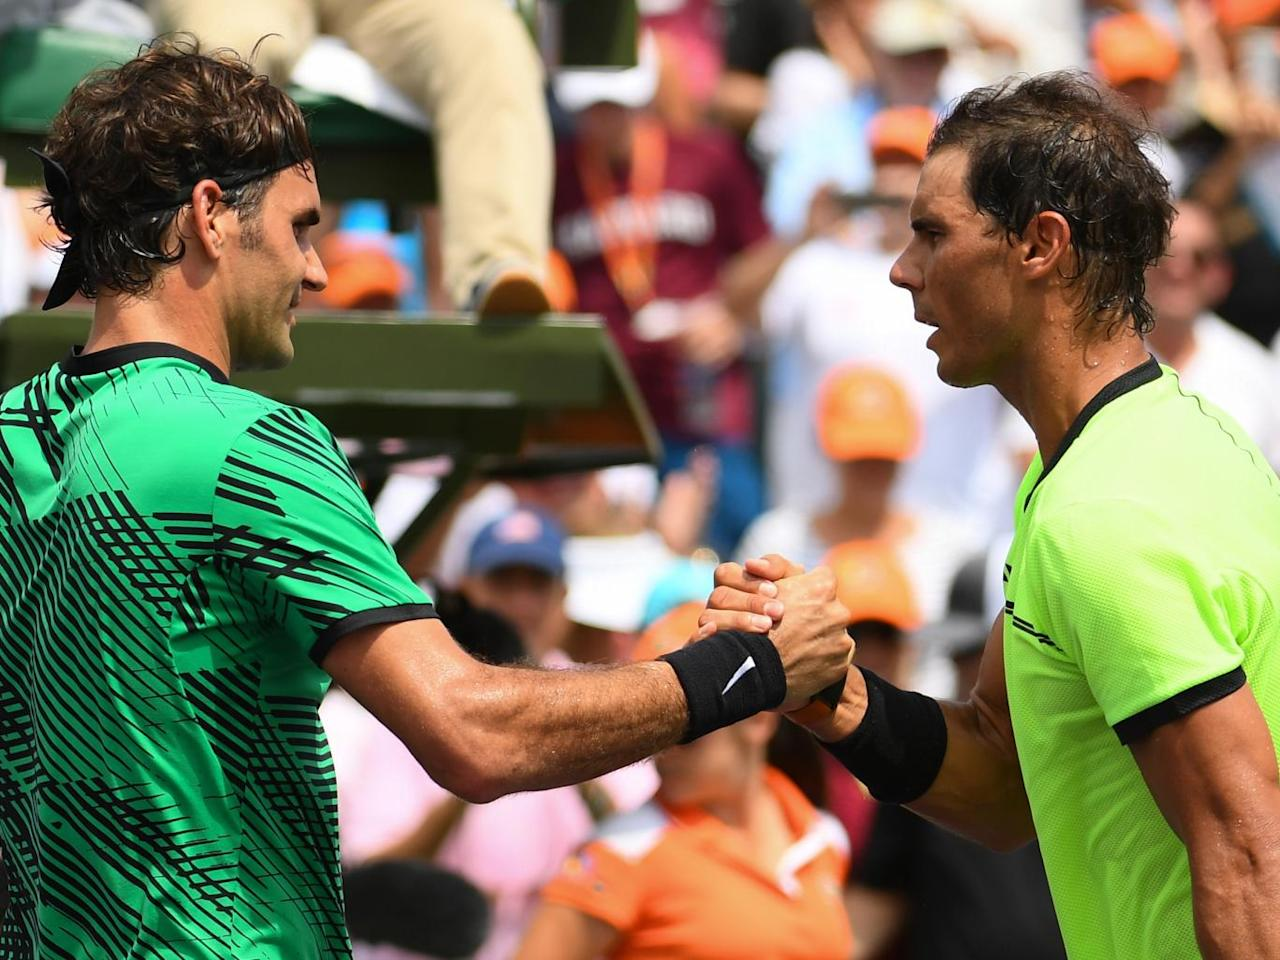 Rafael Nadal's Monte Carlo mastery proves his comeback is every bit as impressive as Roger Federer's